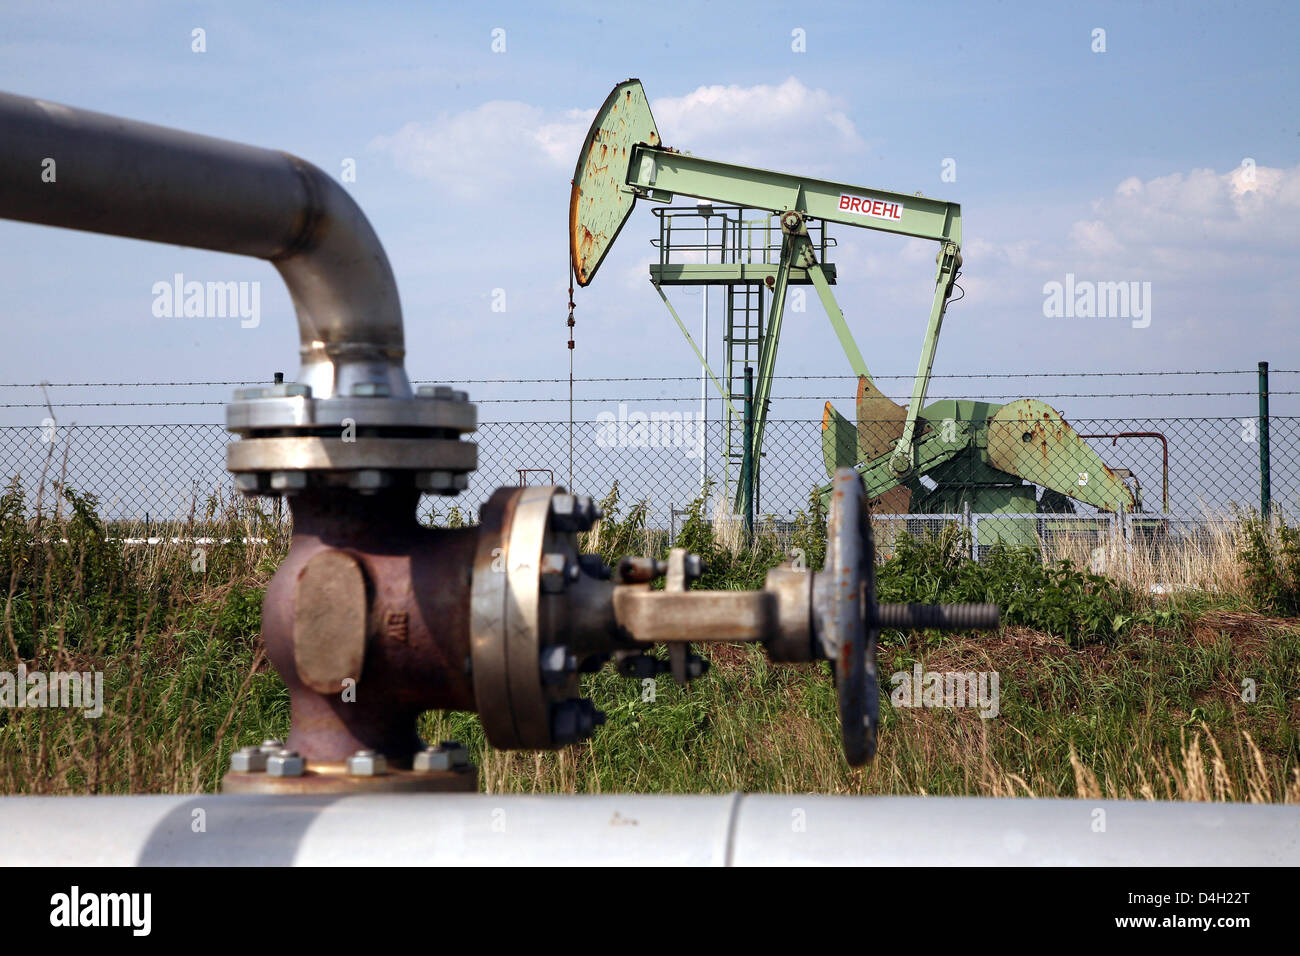 A pumpjack-type oil pump seen behind tubes and a rotary valve near Emlichheim, County Bentheim, Germany, 28 July Stock Photo